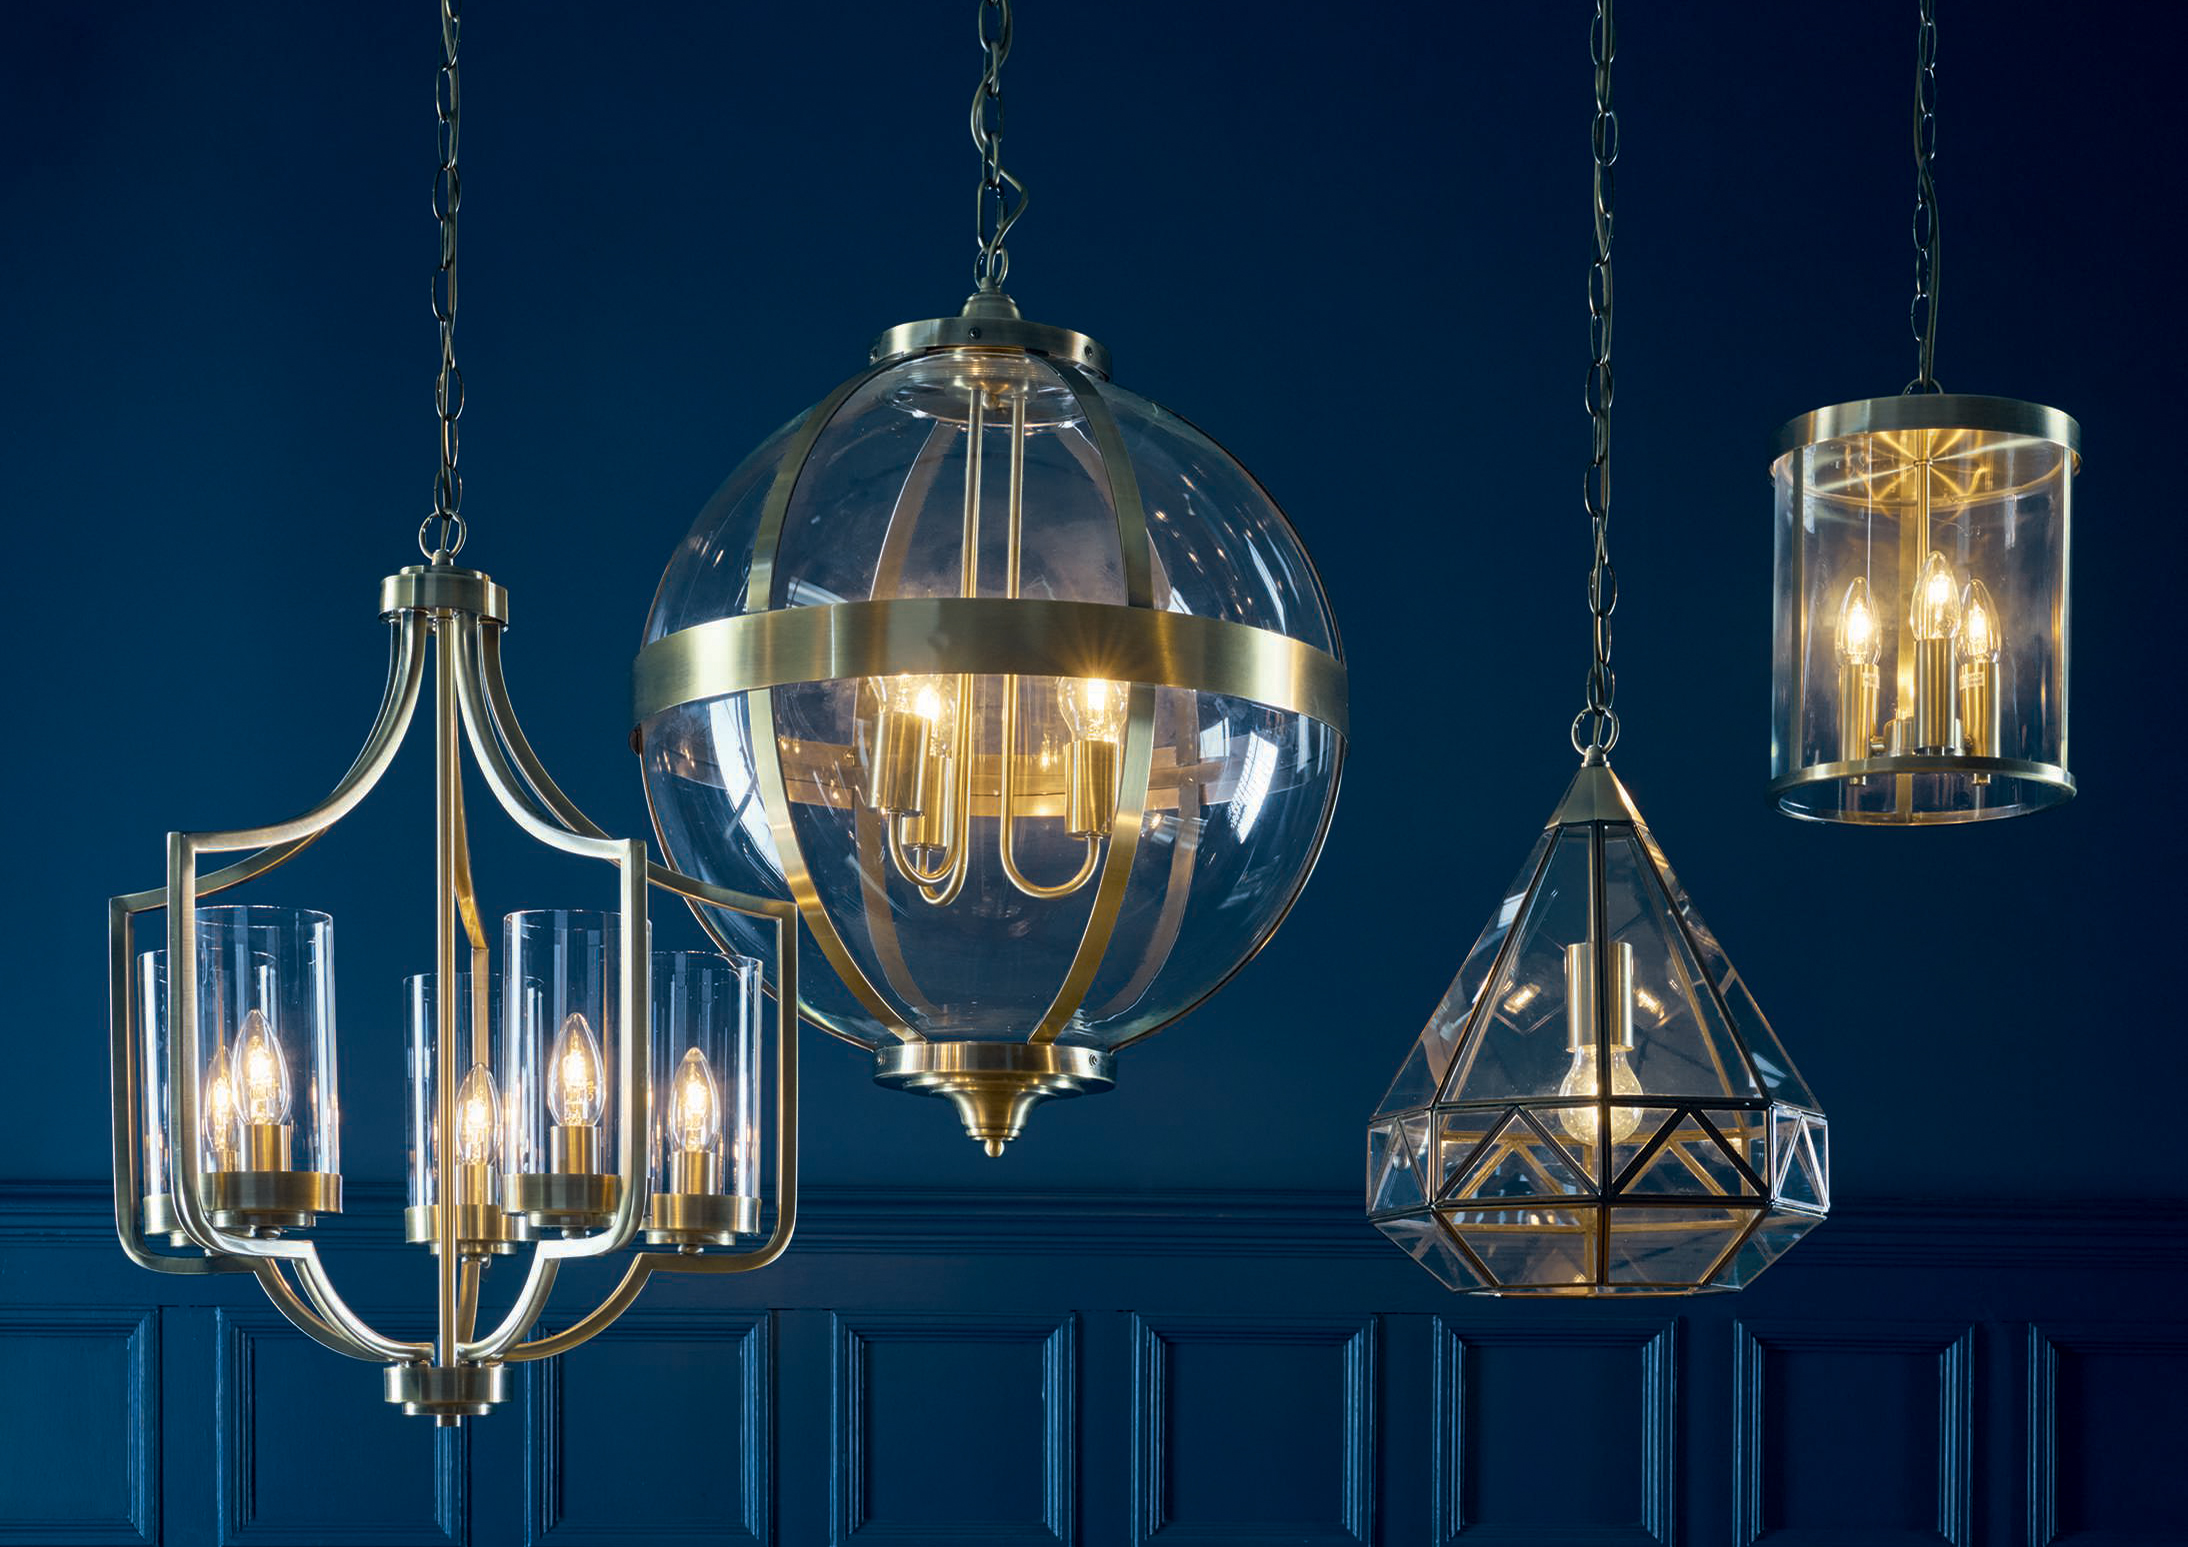 Choosing the Right Lighting for any Room